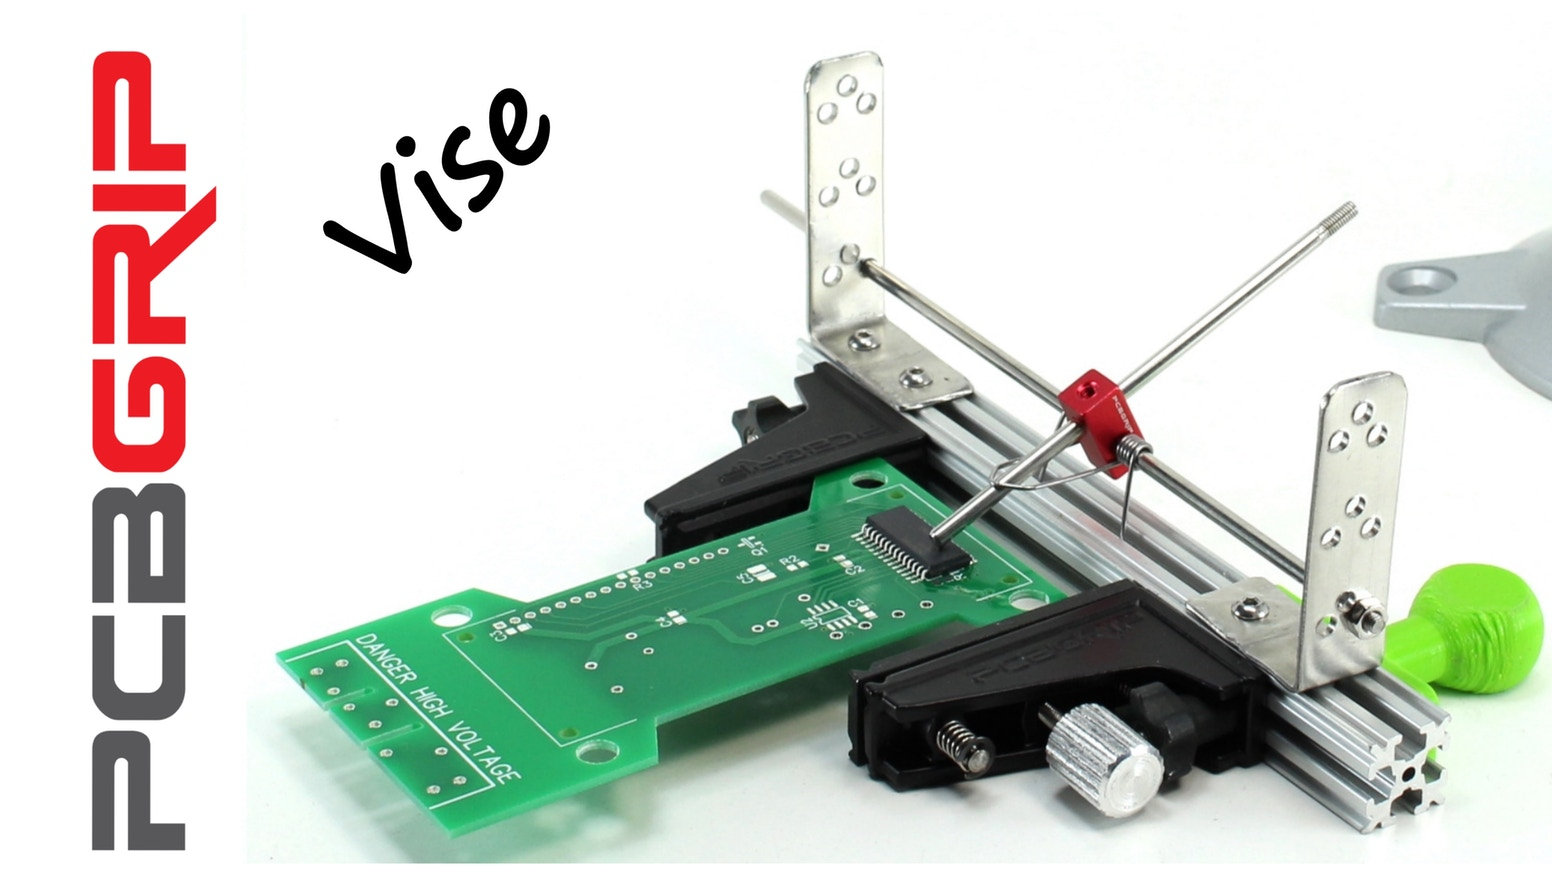 Low profile PCB vise that adjusts quickly and also holds components and probes, freeing your hands while you work